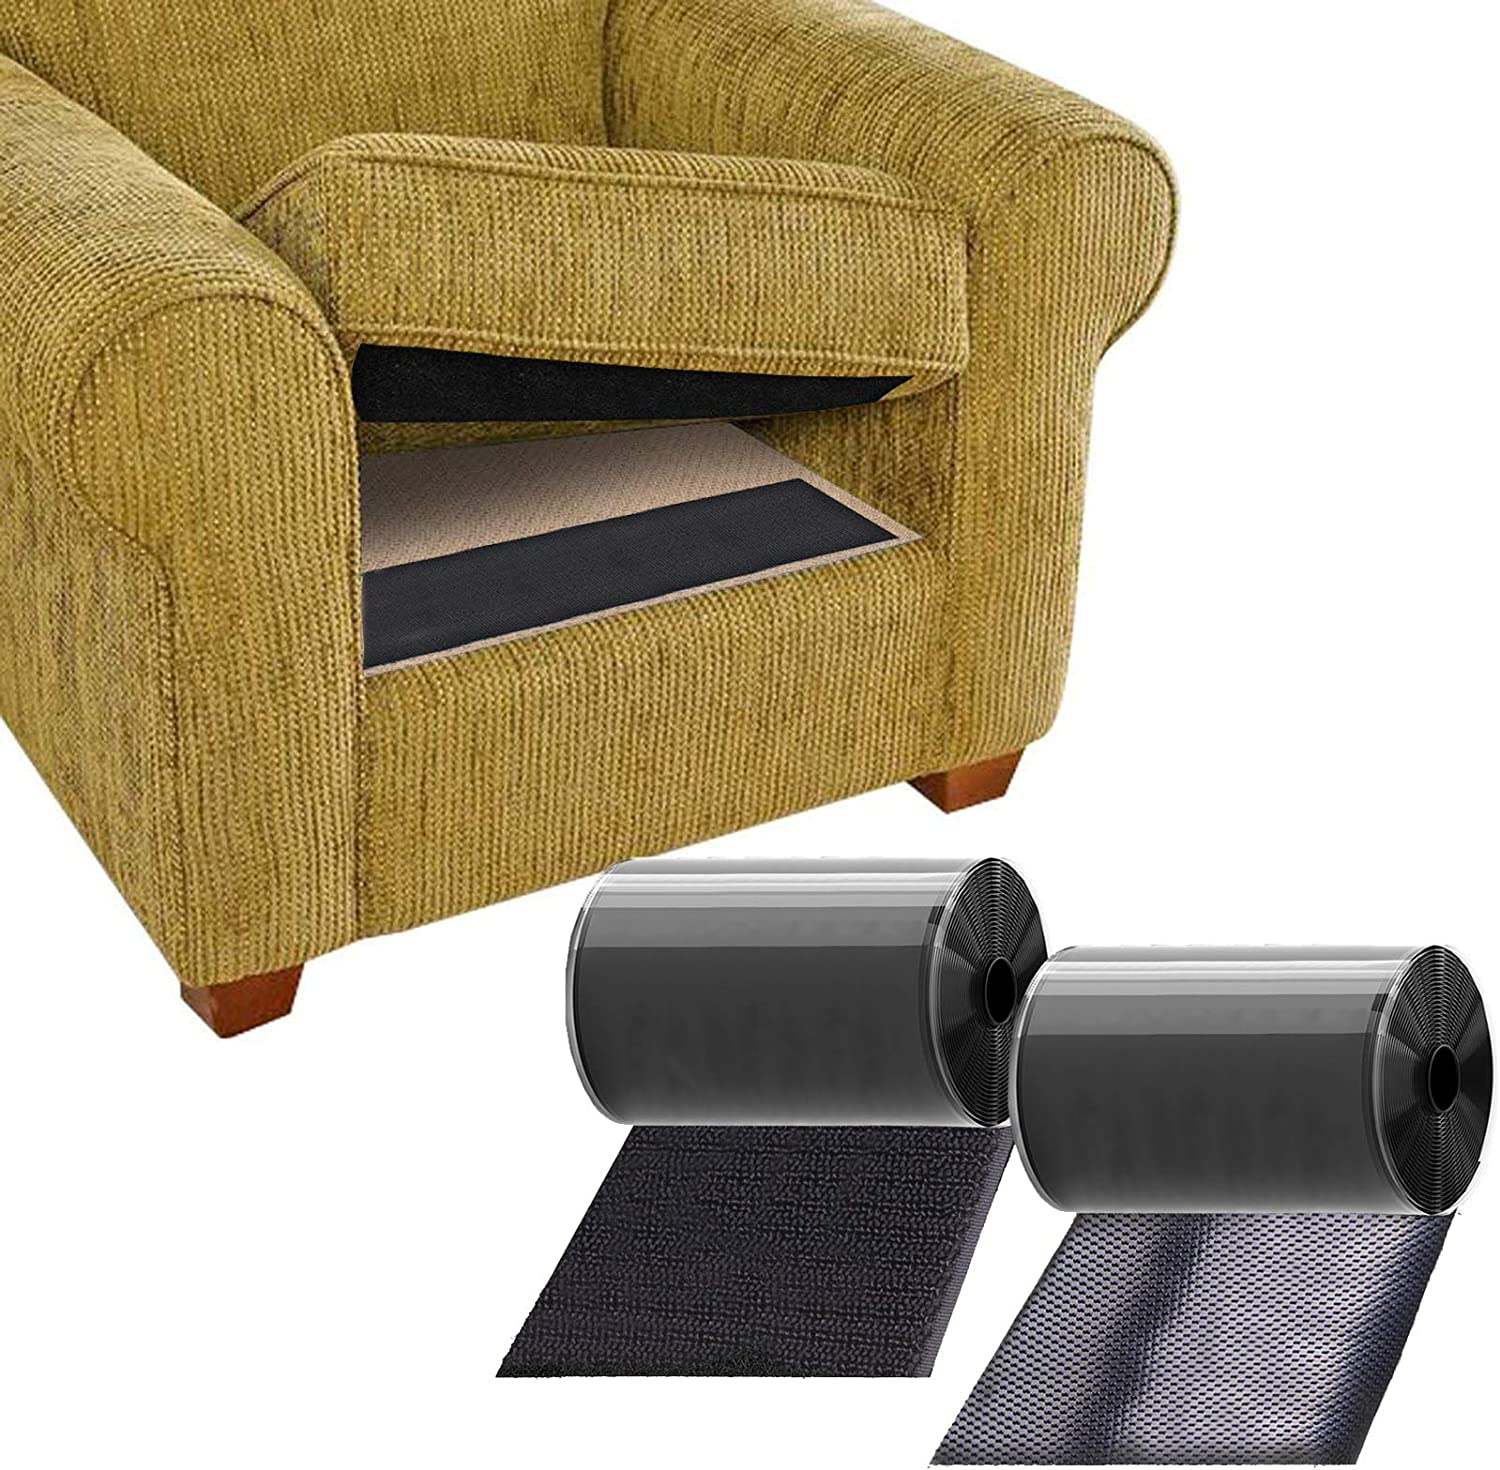 TEUVO Couch Cushion Non Slip Pads to Keep Couch Cushions from Sliding, Premium Hook and Loop Tape with Adhesive for Smooth Surfaces, 11cm Wide and 1M Long